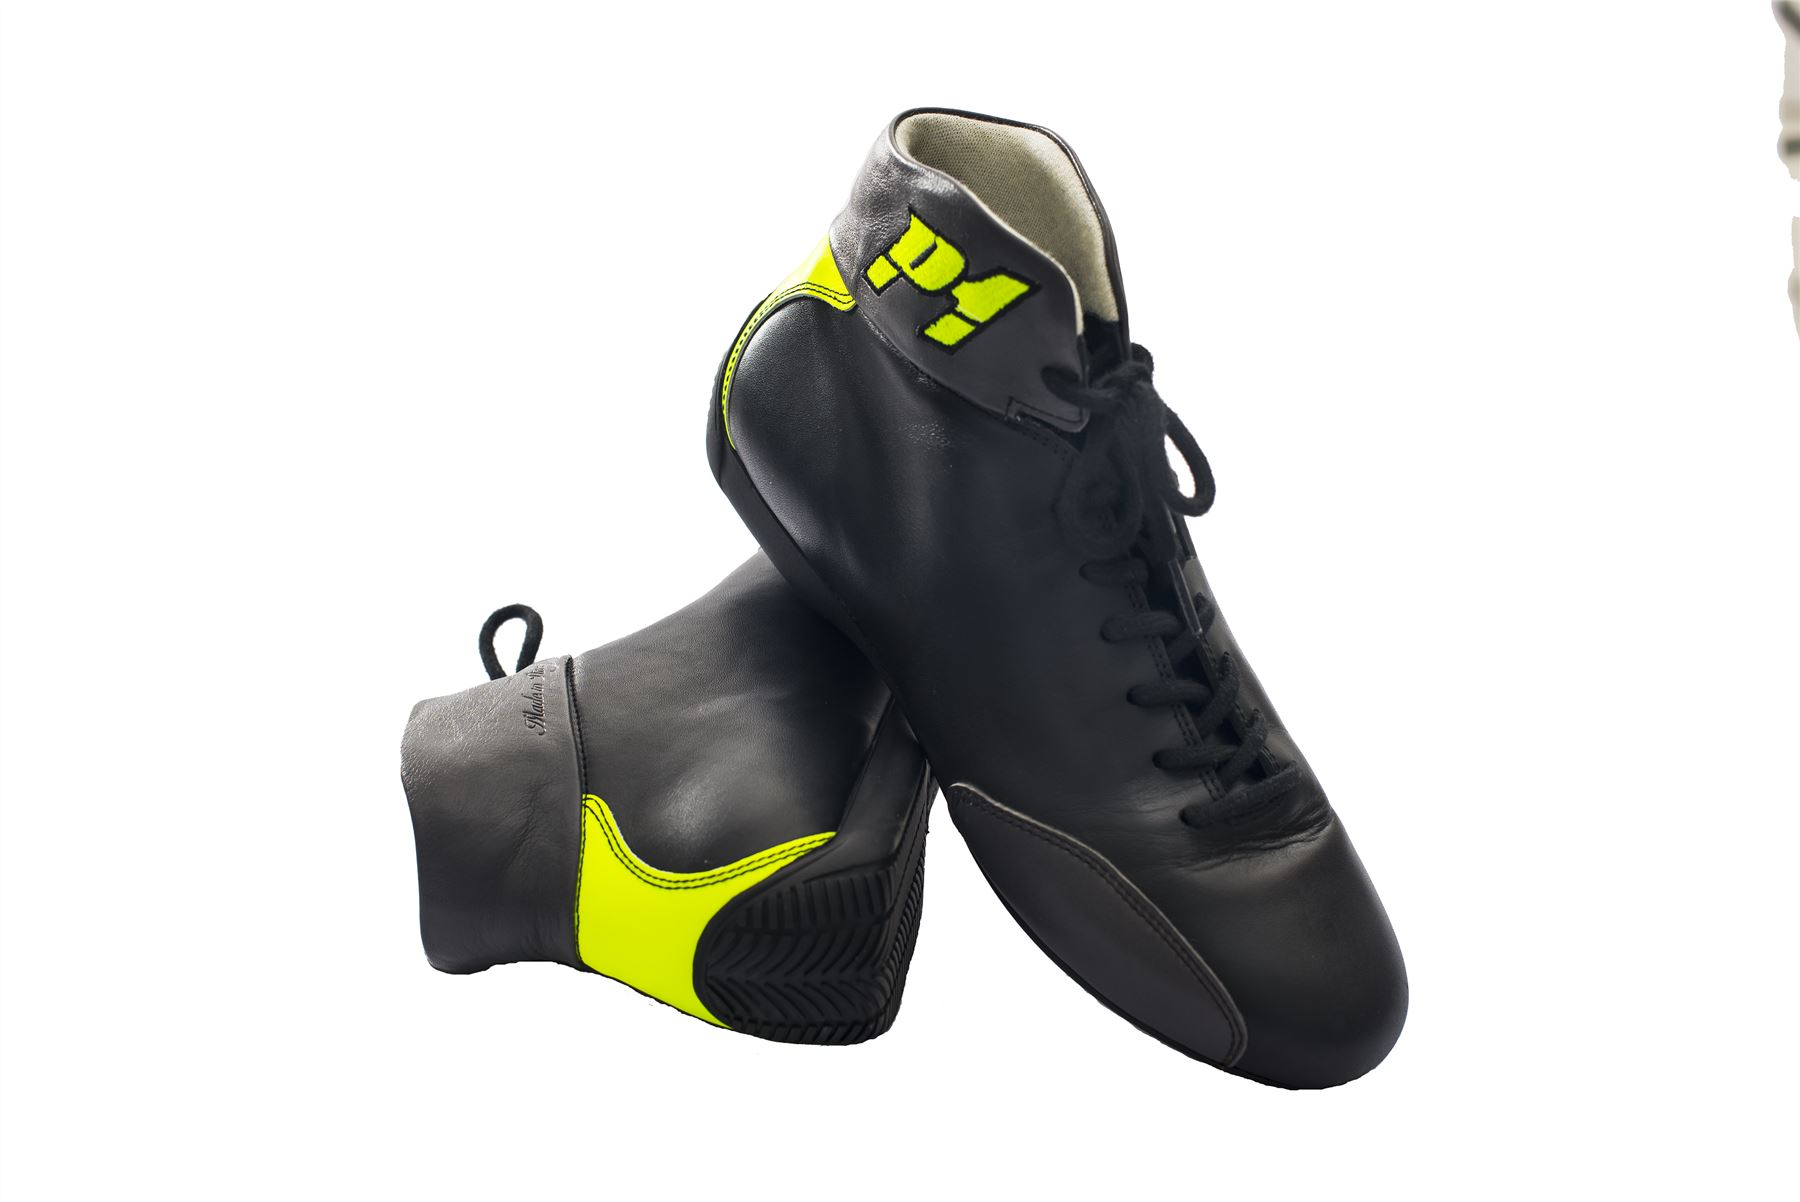 Indexbild 8 - P1-Racewear-Monza-FIA-Approved-Soft-Leather-Race-Rally-Boots-Black-Fluro